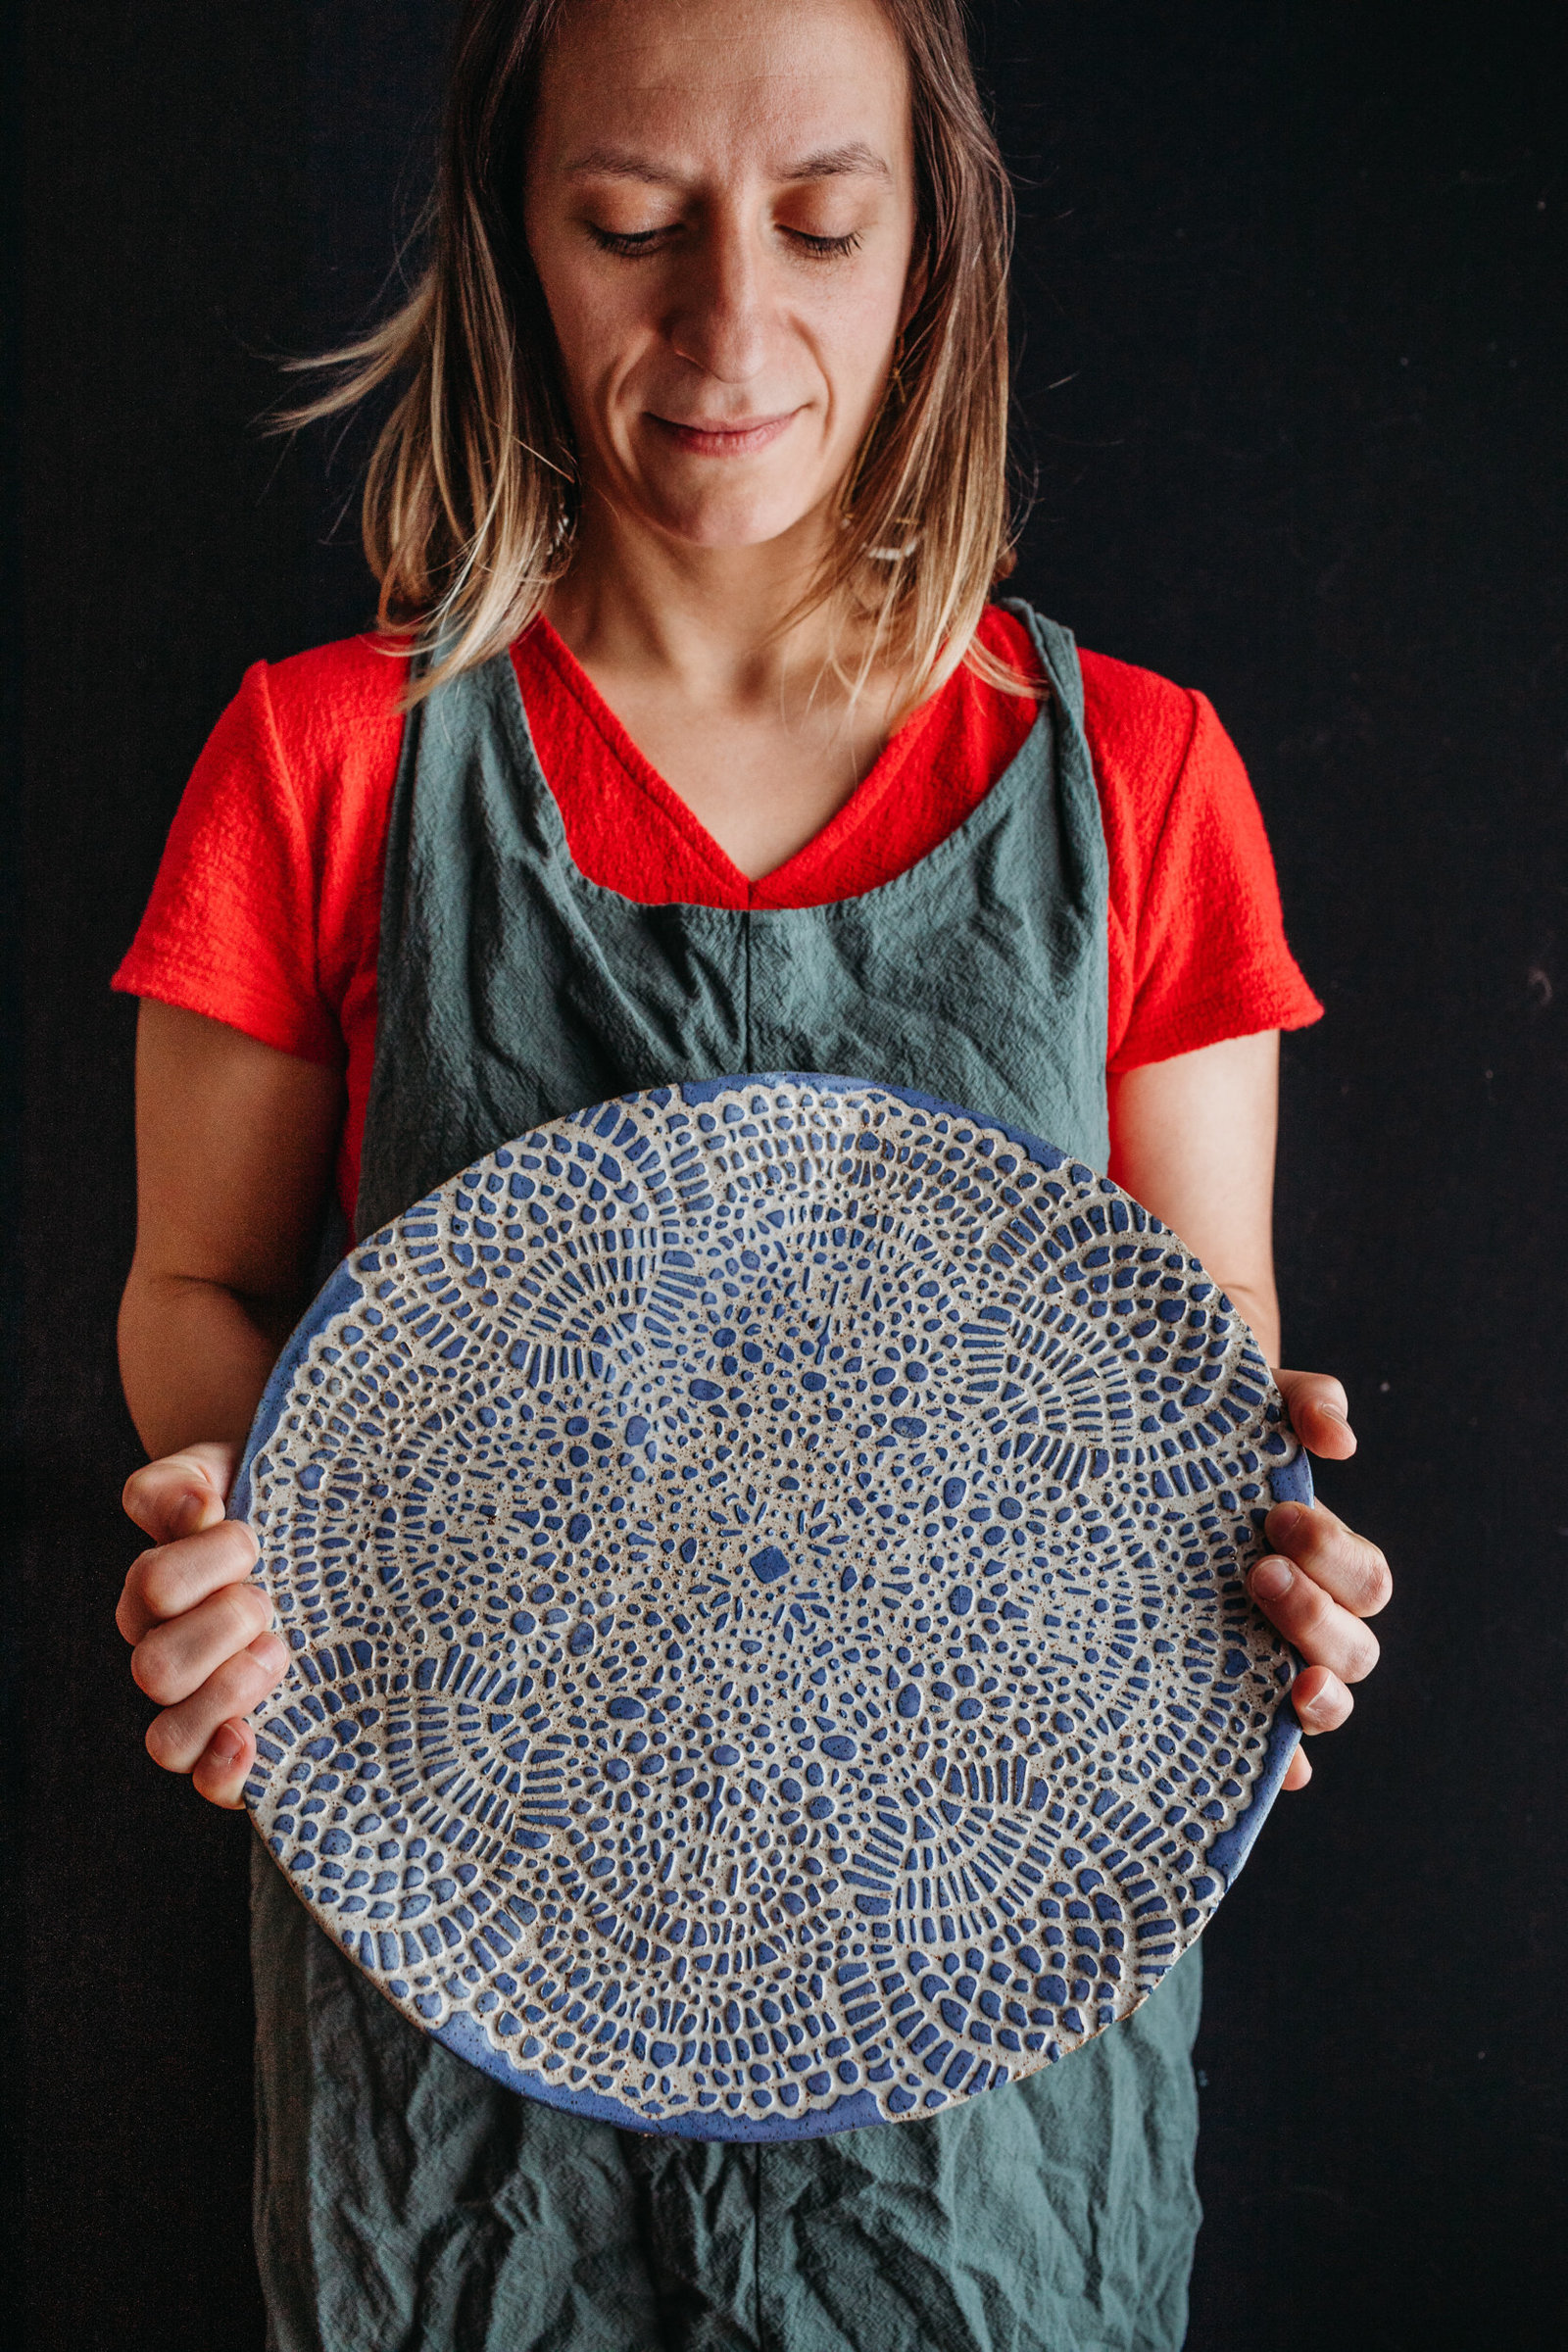 potter holds textured plate with black background in hopkinton